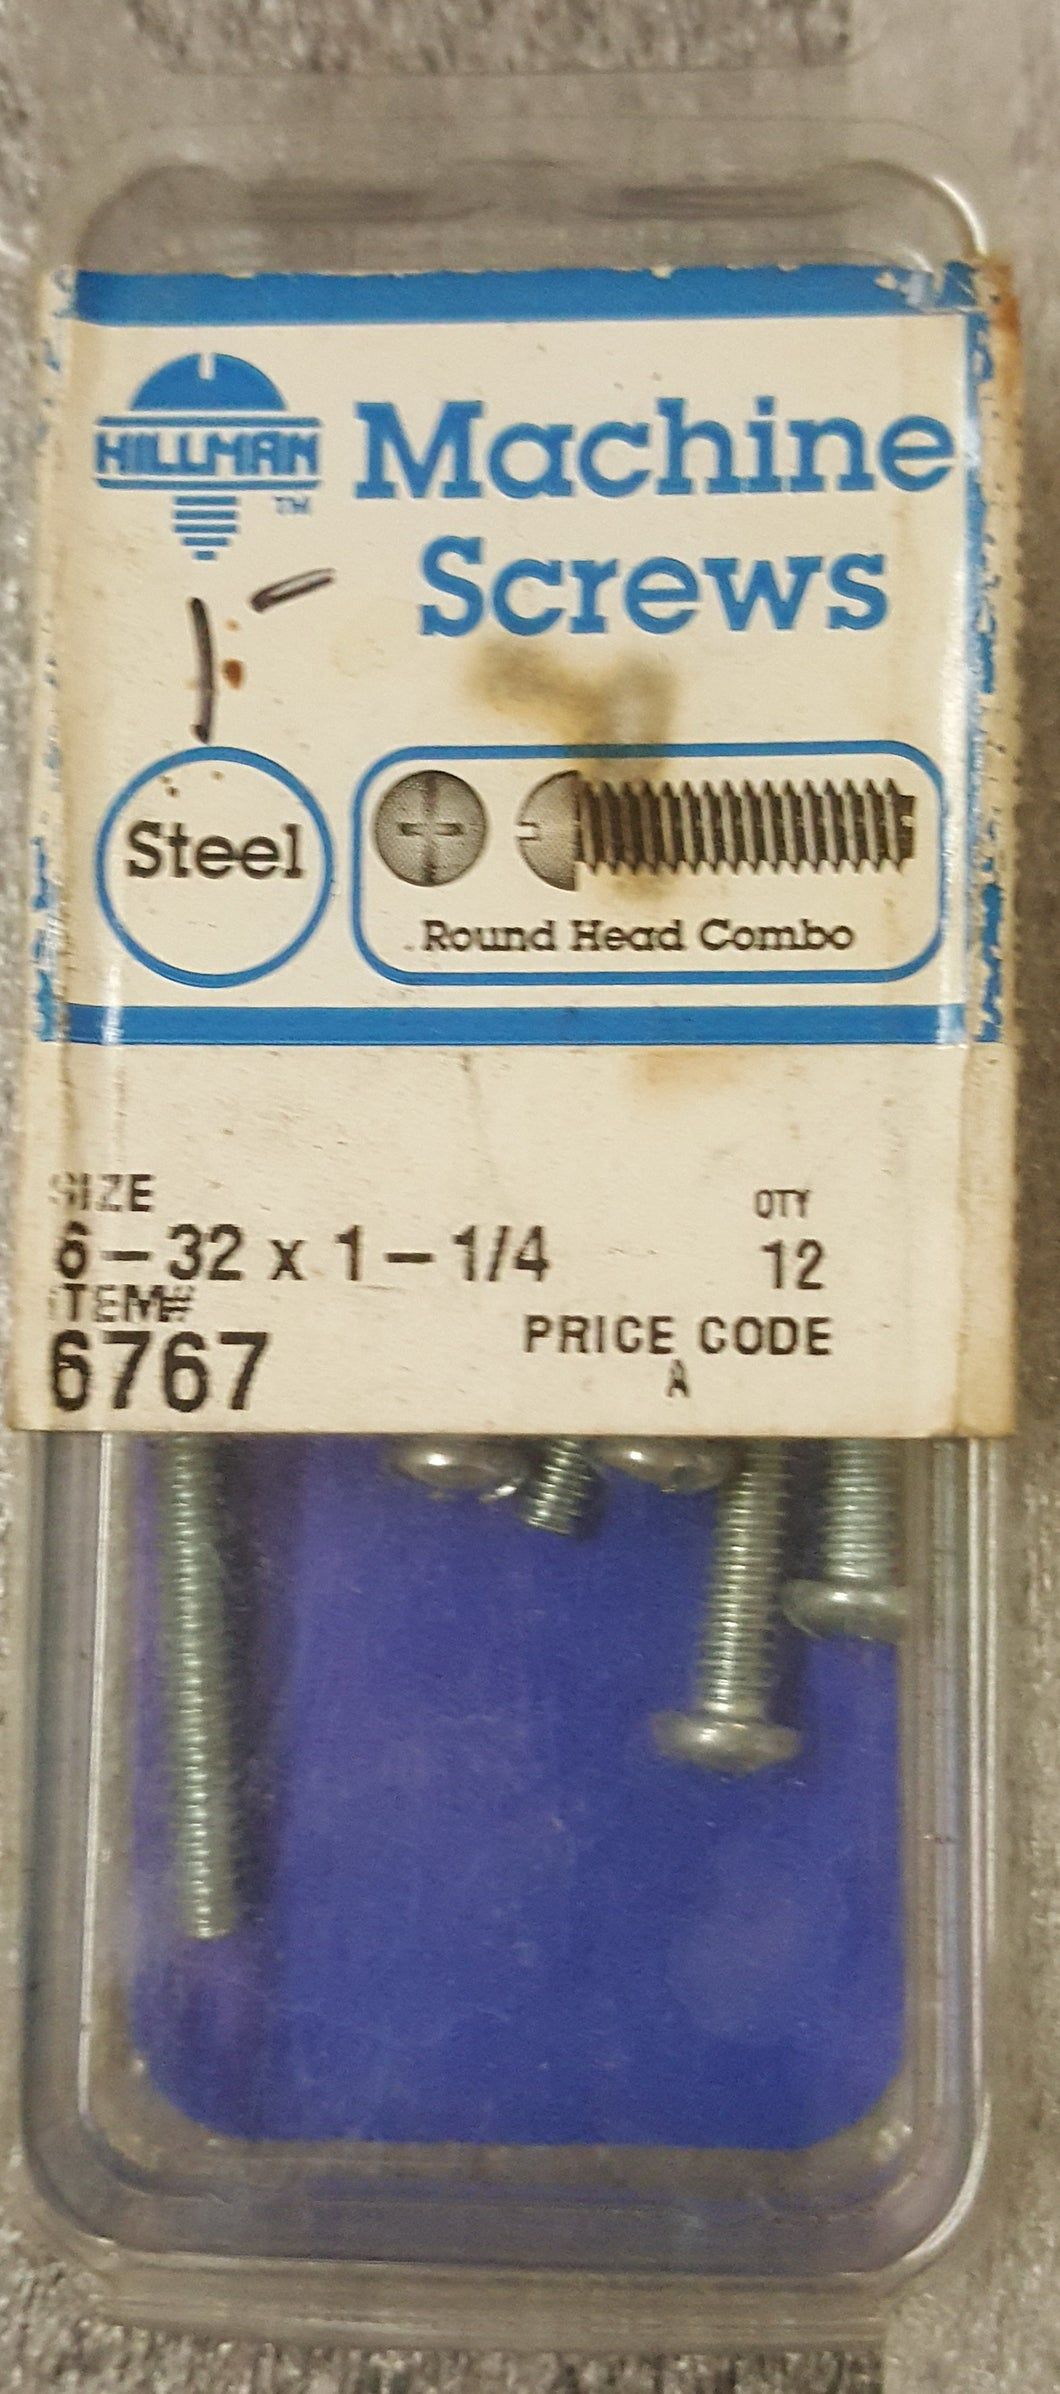 The Hillman Group 6767 Round Head Combo Machine Screw 12-Pack